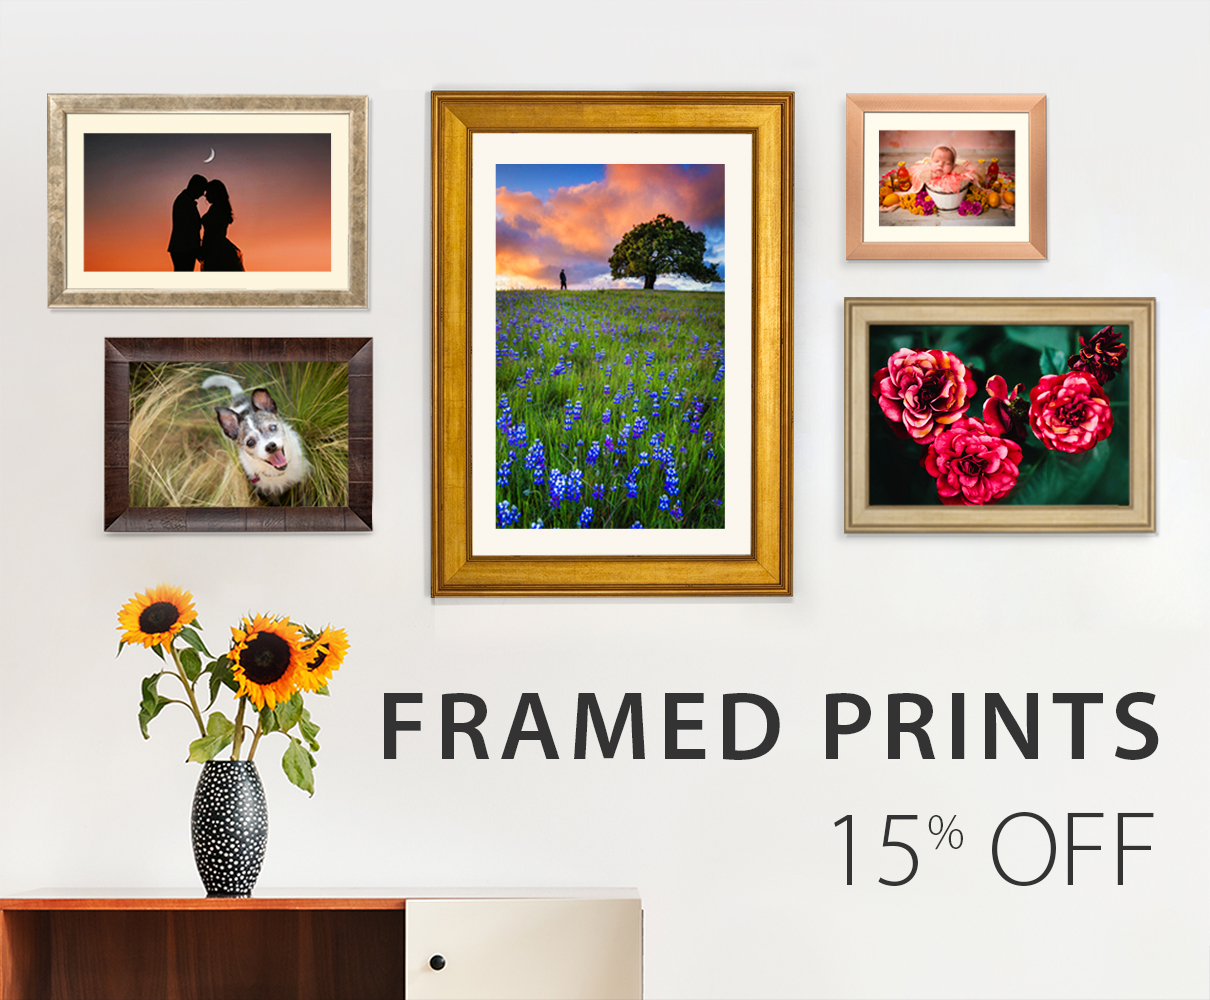 15% Off% Off Framed Prints!